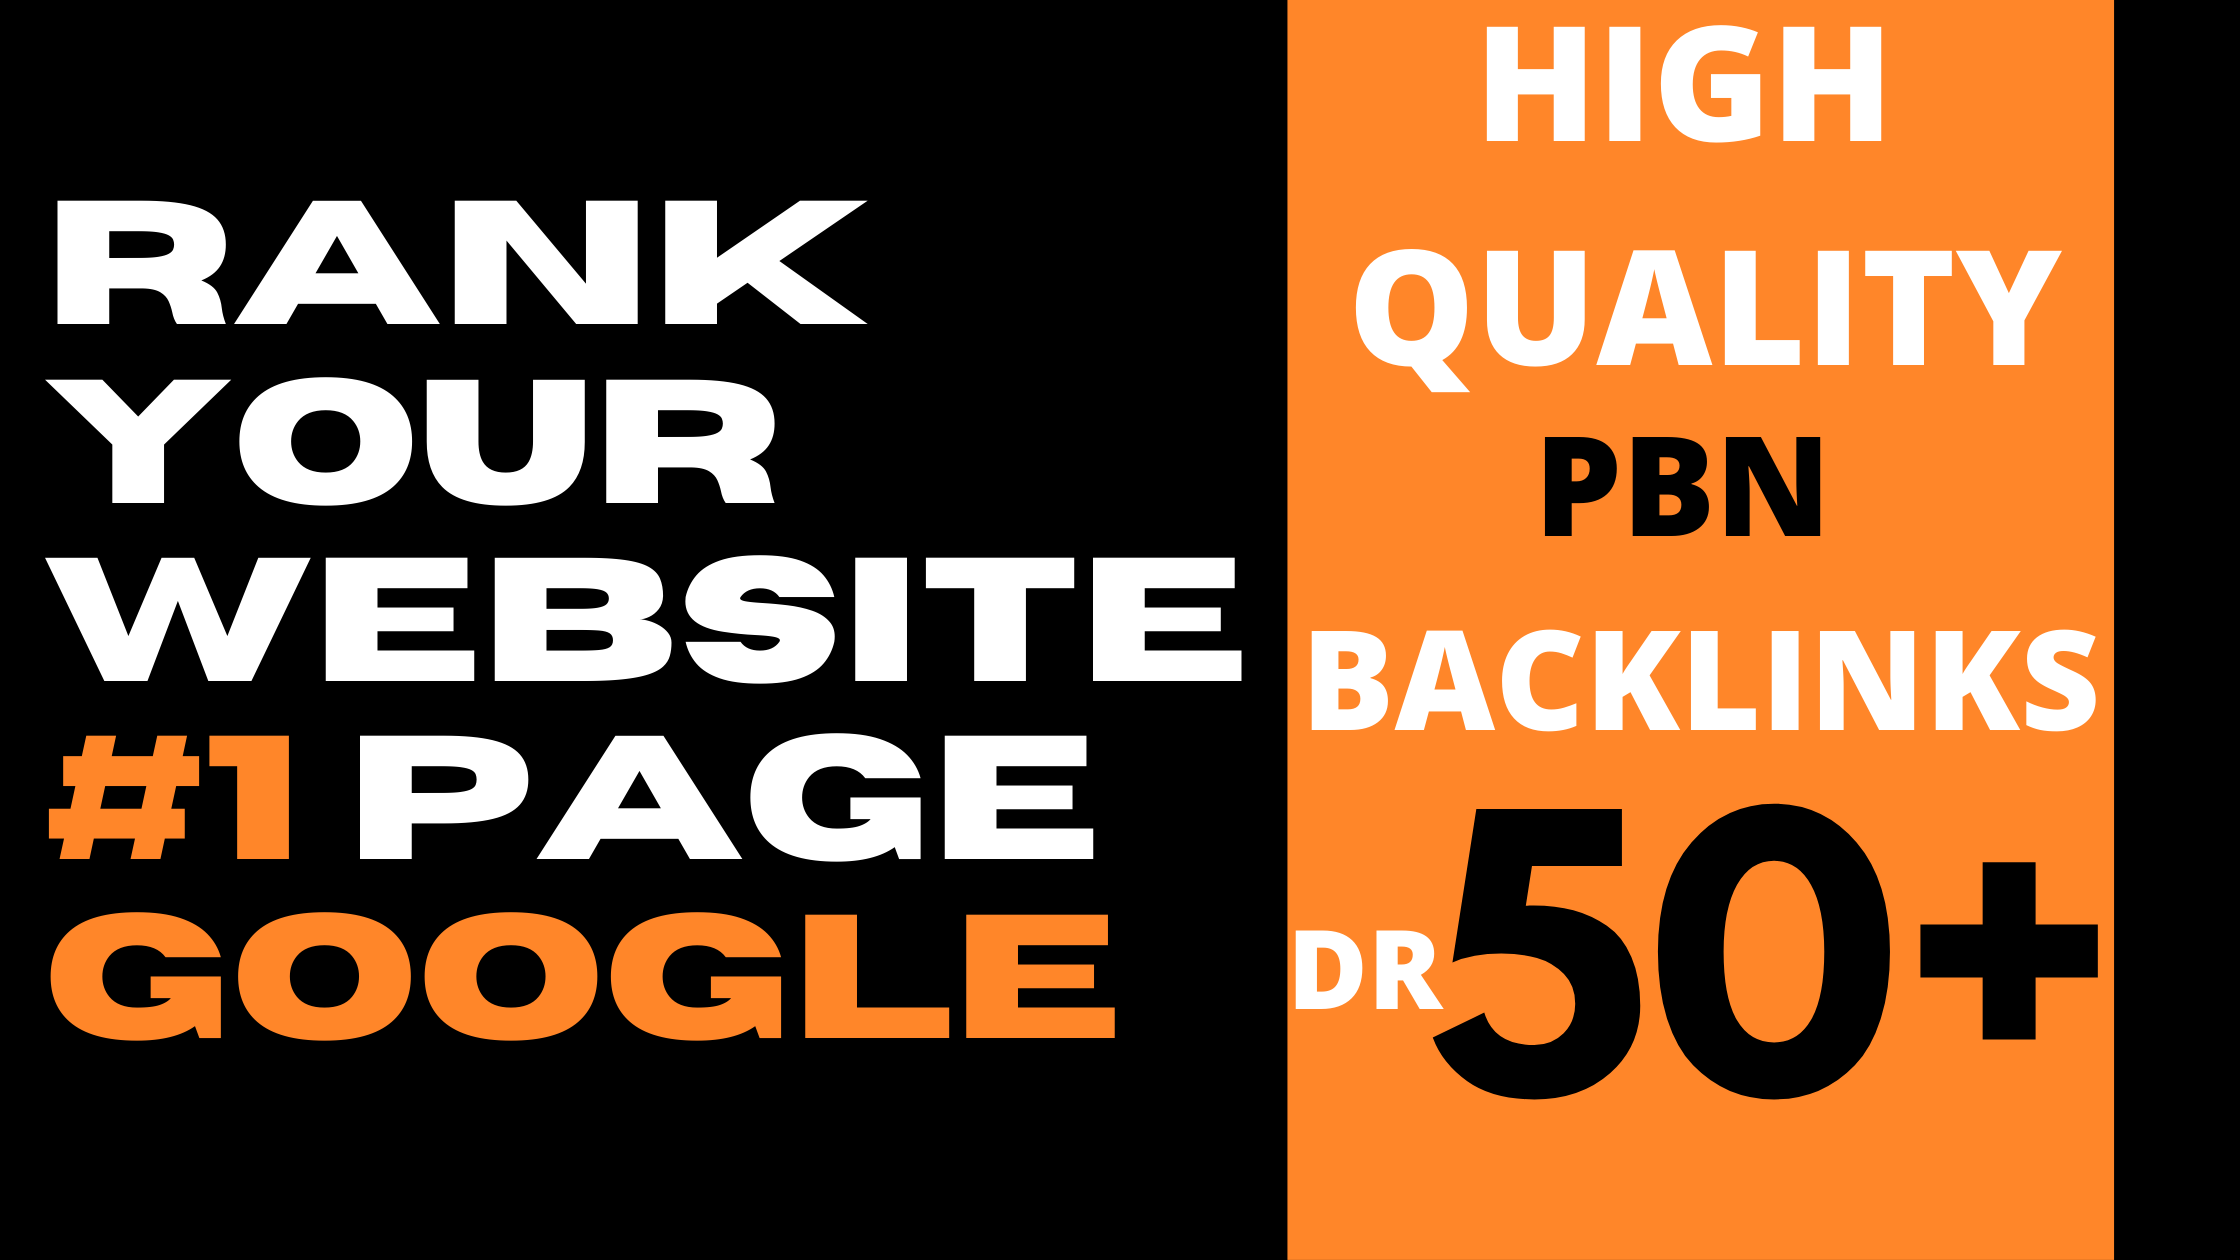 Build 5 Permanent High Quality DR 50+ SEO PBN Backlinks- 1st Page Google Ranking